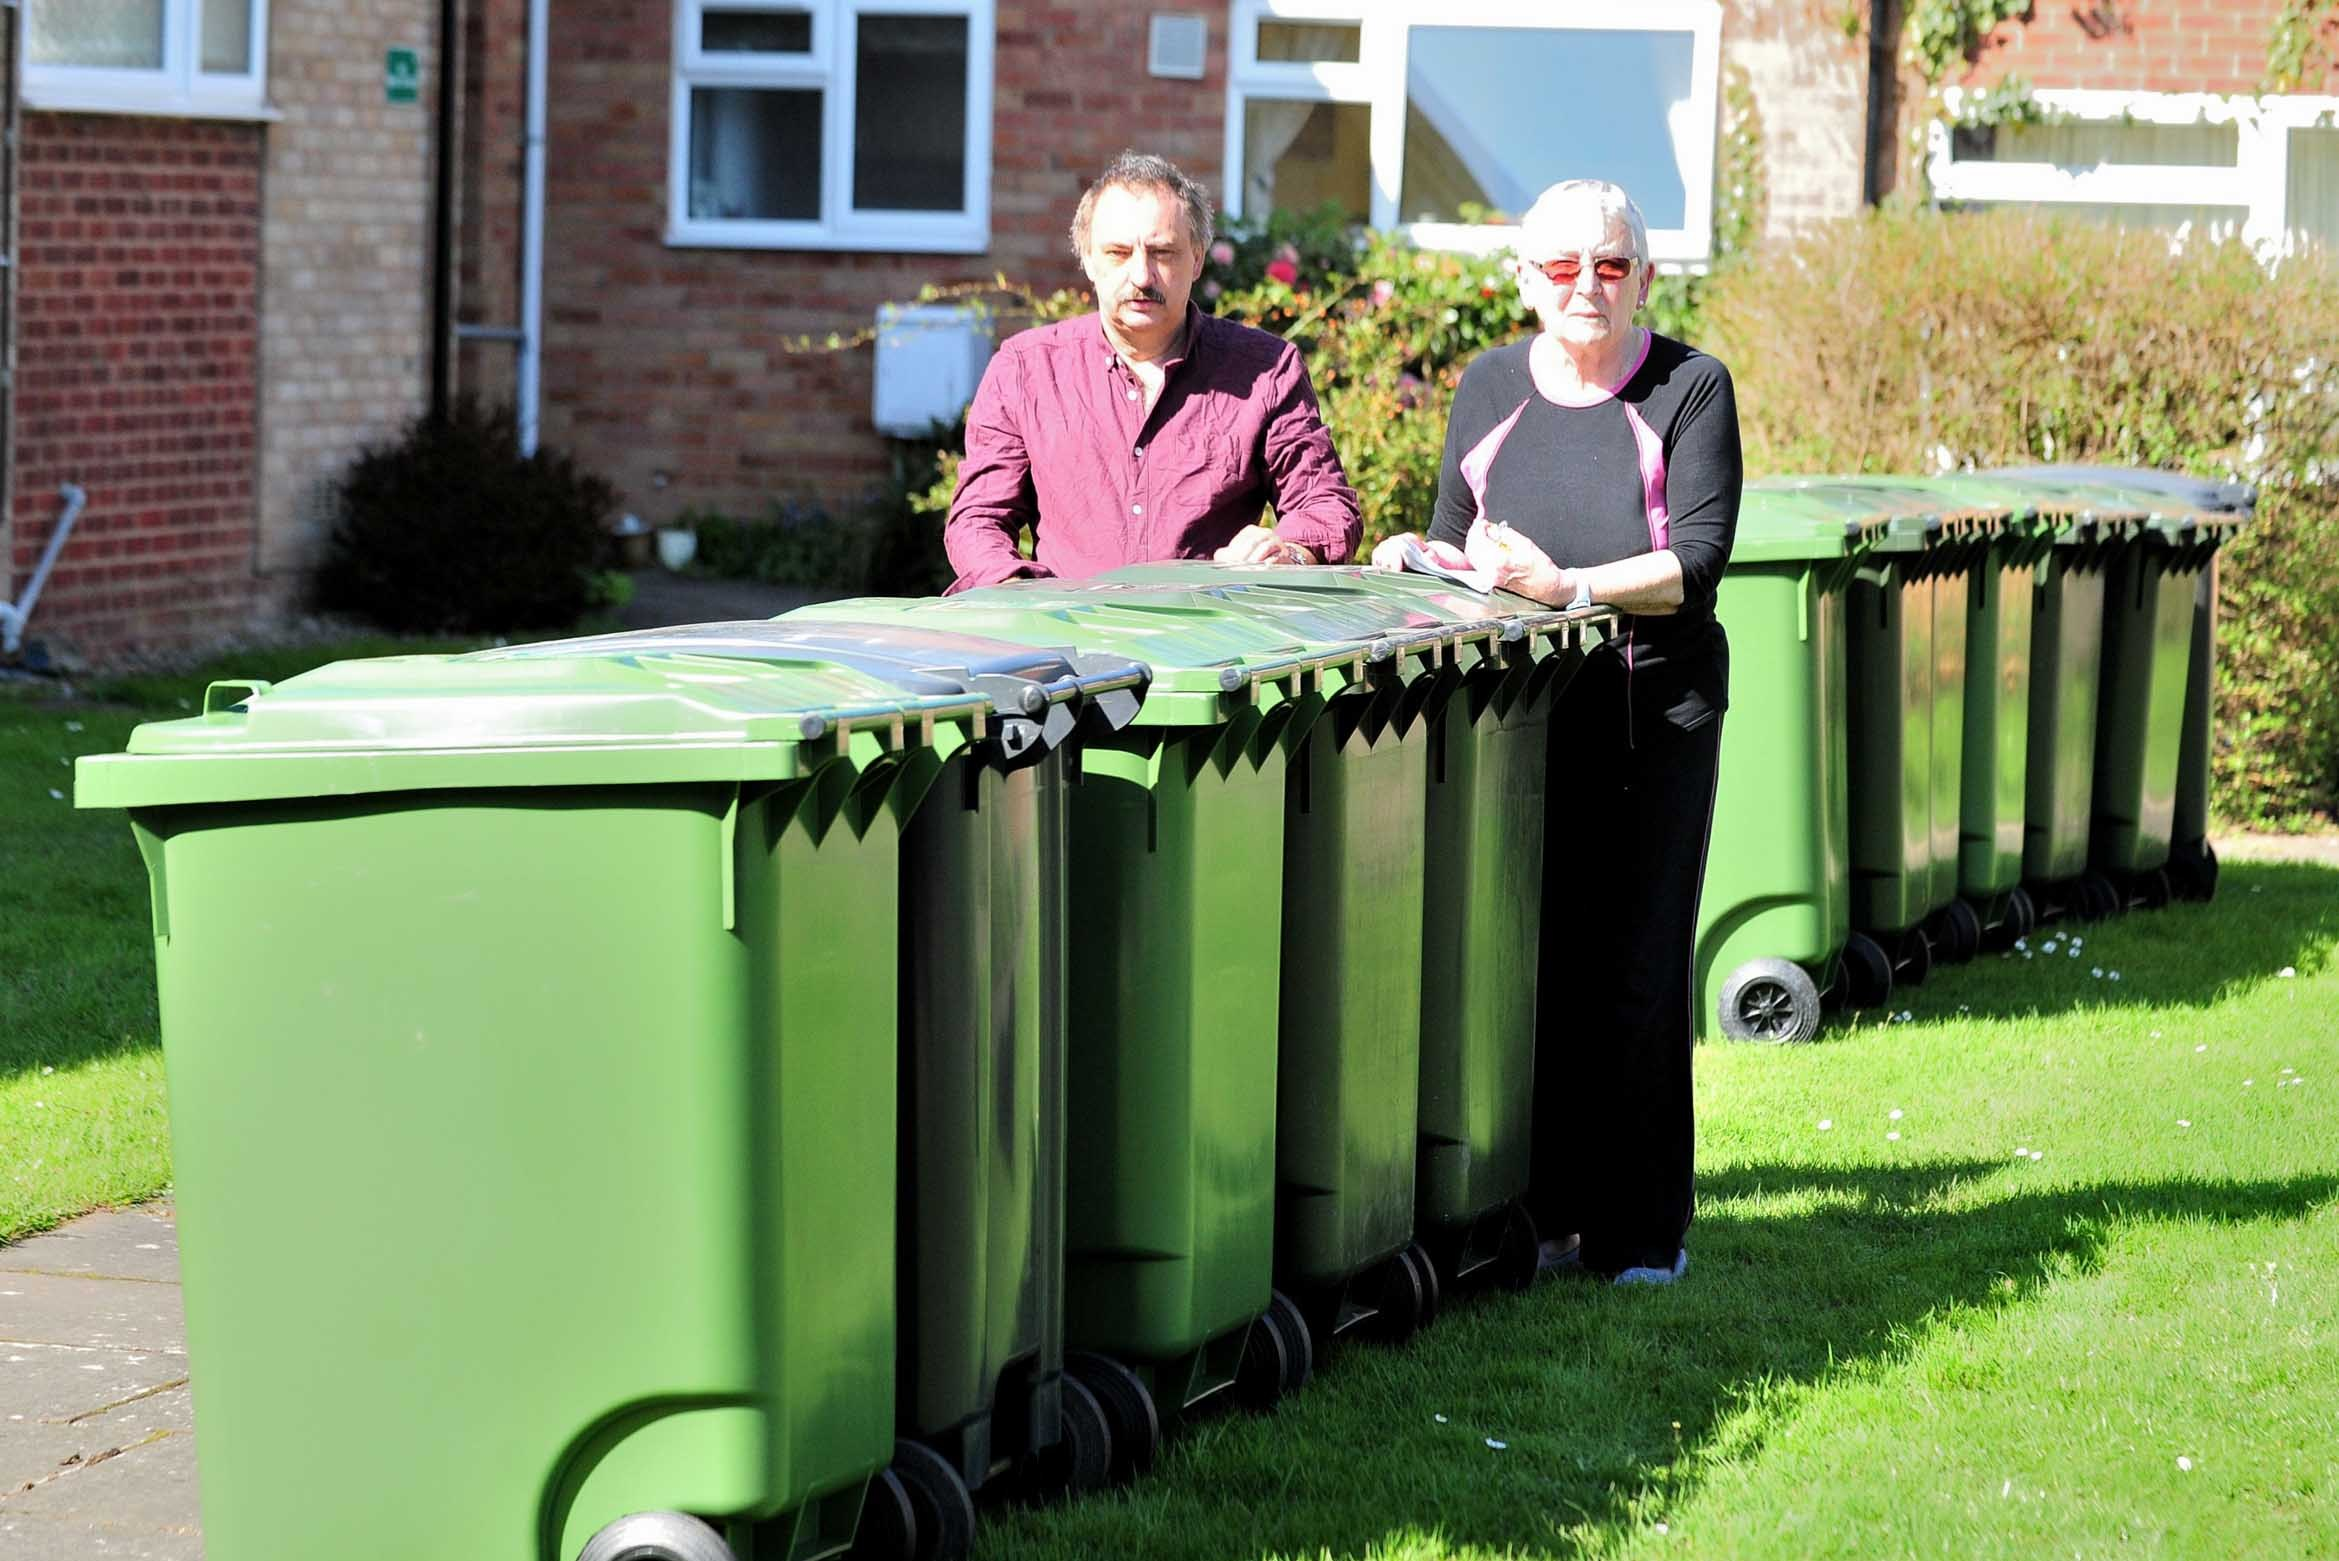 Brook Farm Drive residents Ann Clack and Geoff Howlett with the  array of wheelie bins outside their homes in Malvern. 18.4.18.